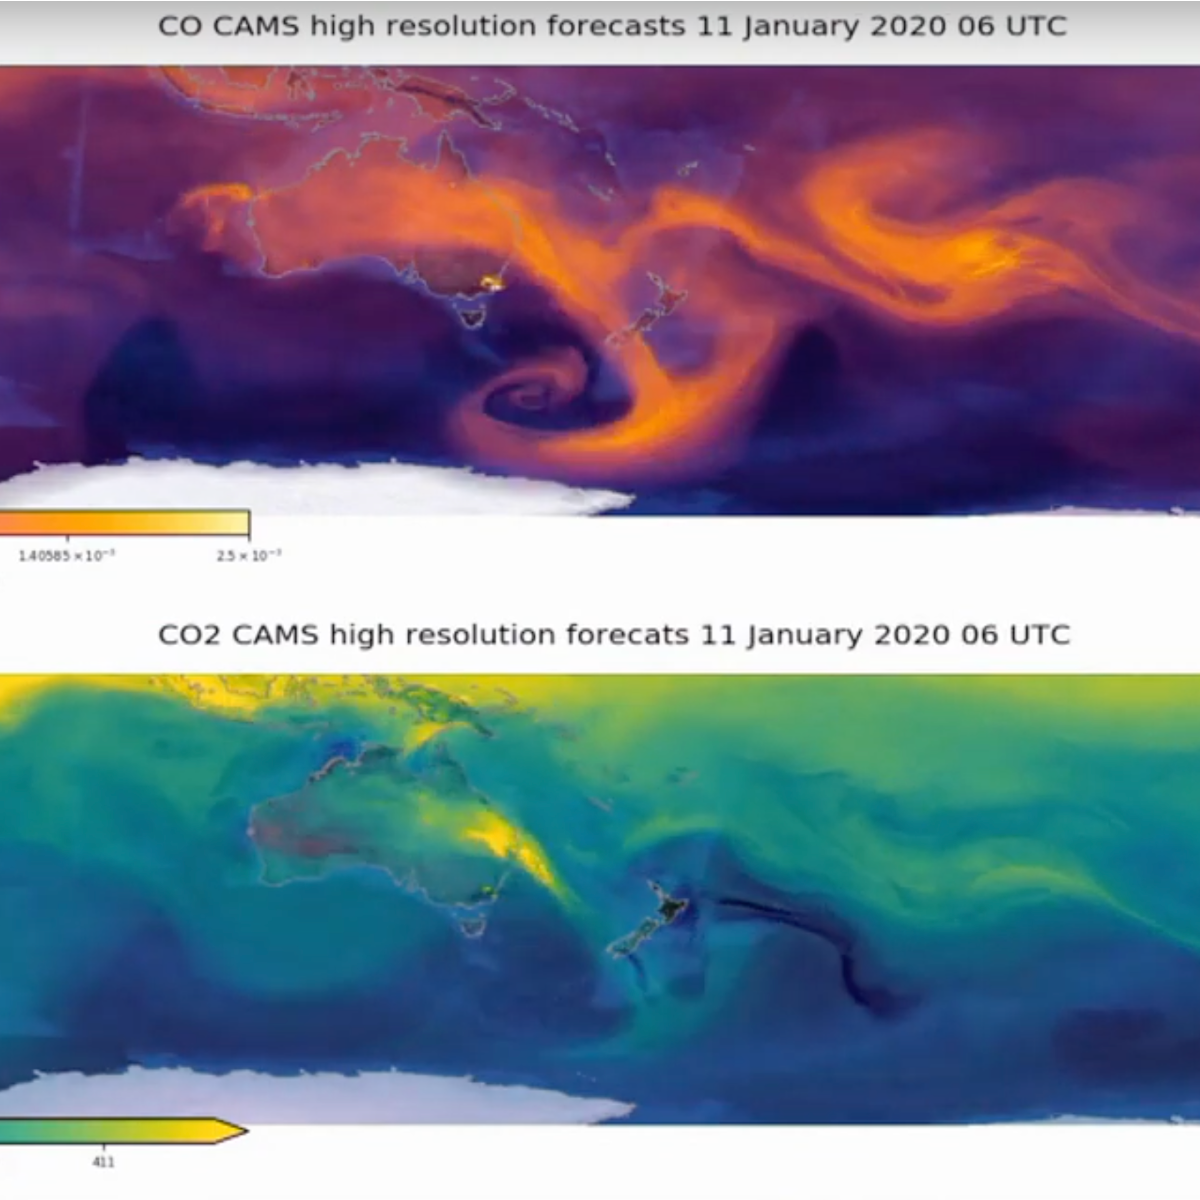 CO CAMS High Resolution forecasts